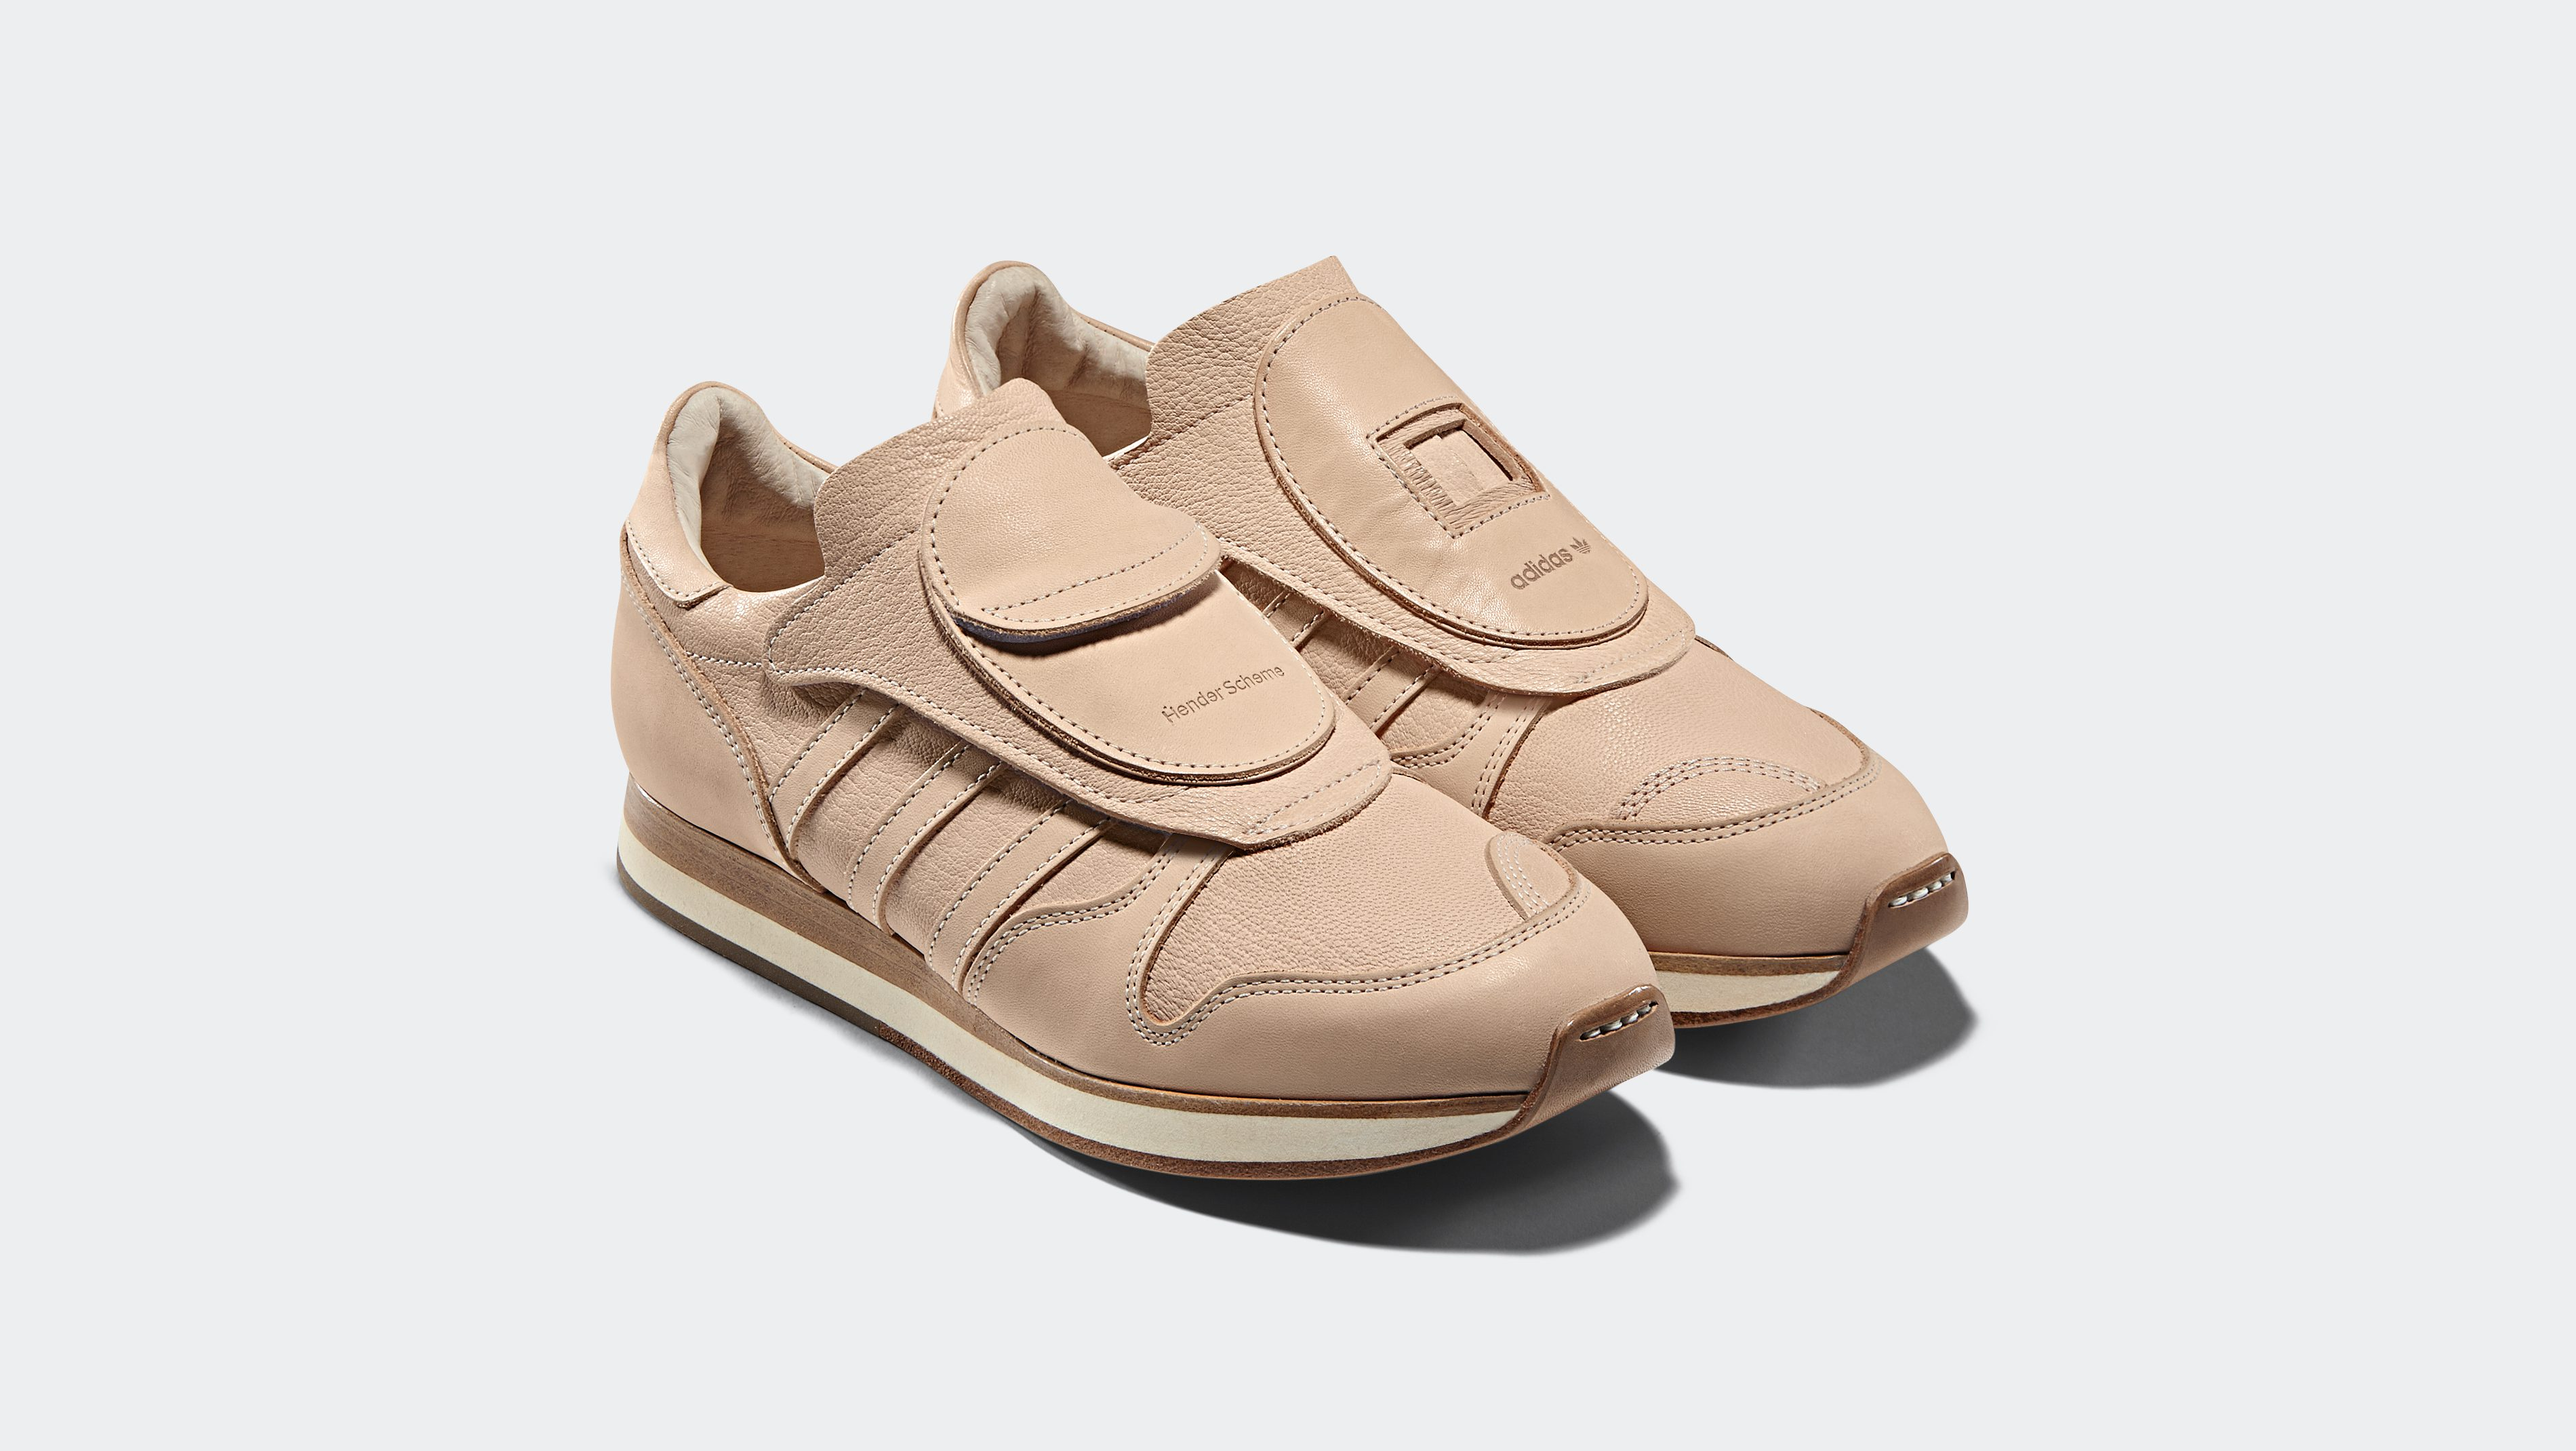 b0d0d00f48dd Adidas is collaborating with a Japanese label to create artisanal  knock-offs of its own shoes